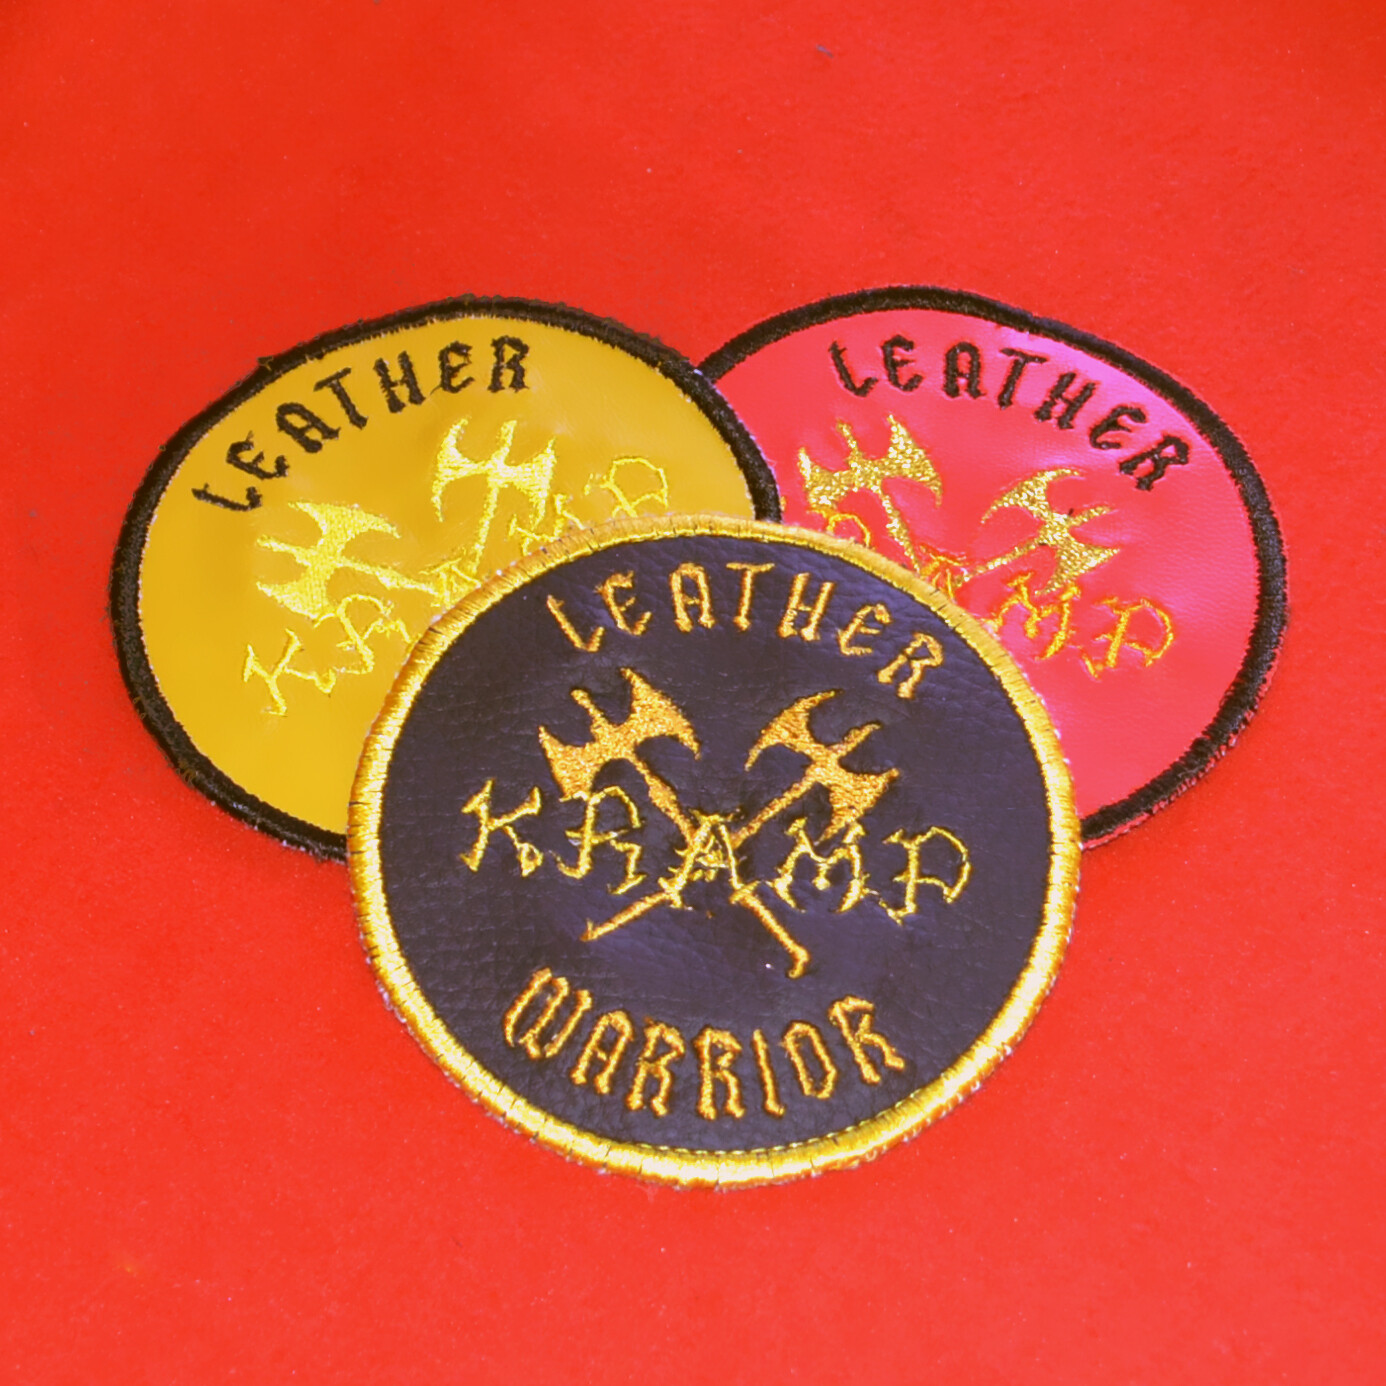 Leather Warrior patch - PU LEATHER IN 3 COLORS